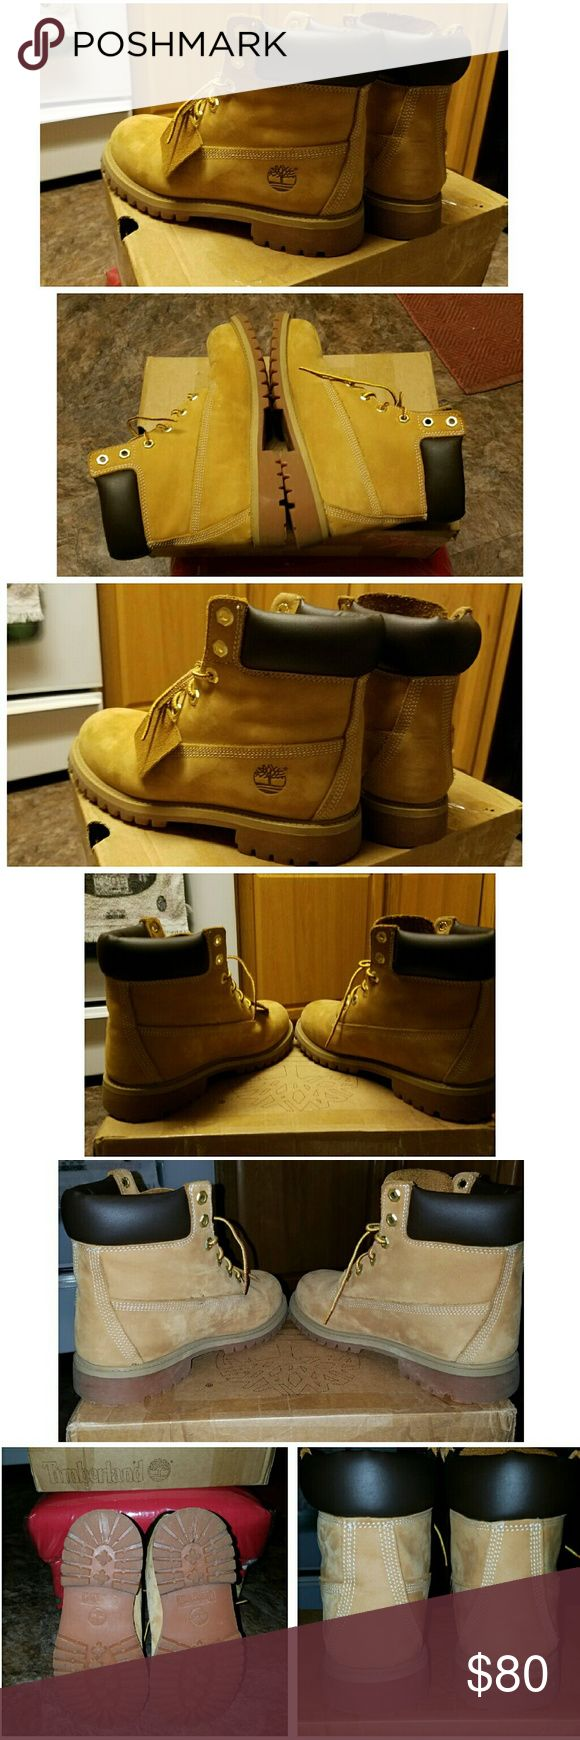 Timberland boots, reasonable offers accepted. Worn with care twice. As you can see in the pics. Still in very good condition with box. This are youths but size 7 in womens. Timberland Shoes Winter & Rain Boots